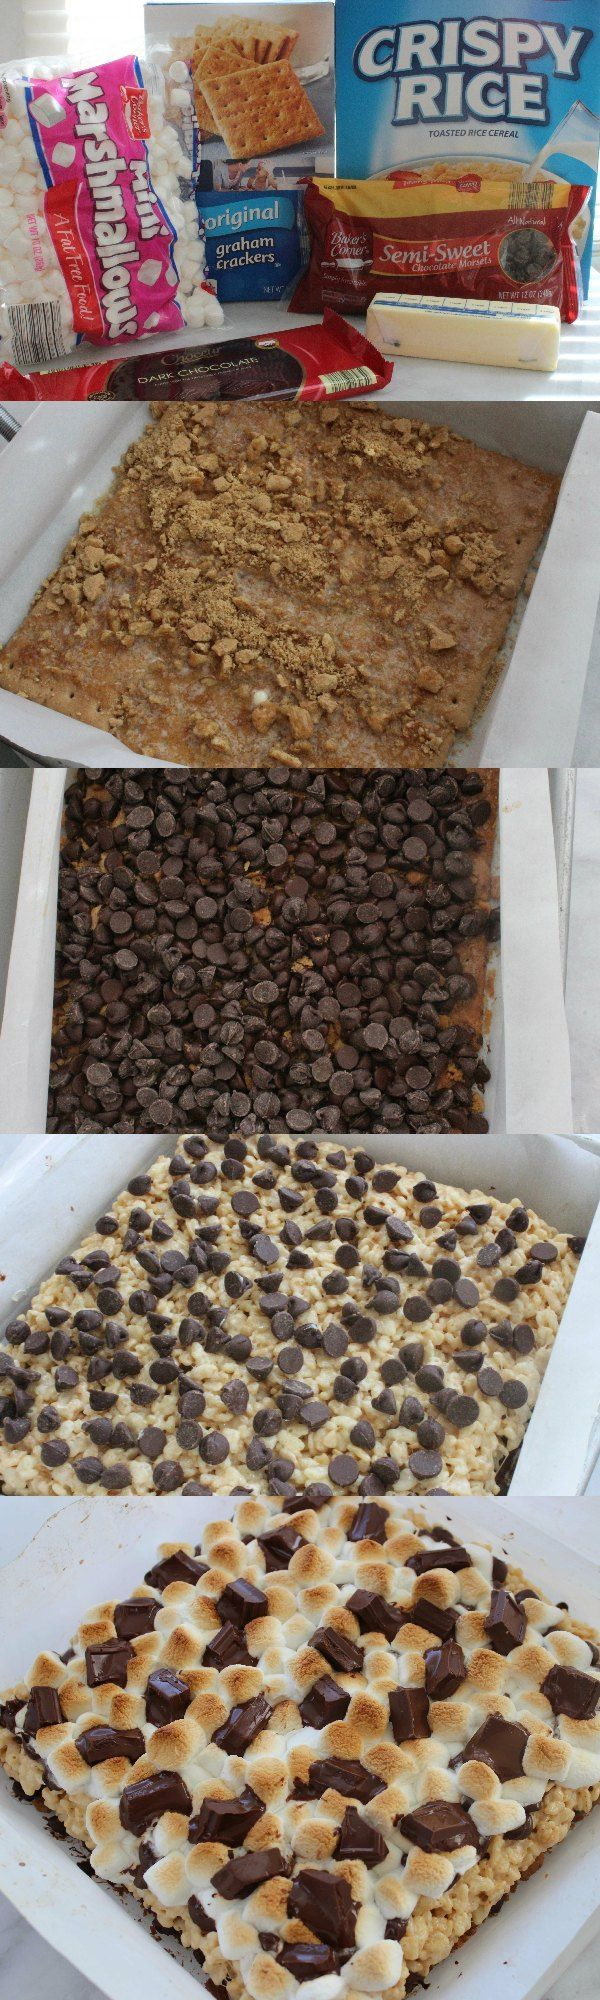 These S'Mores Krispie Treats combines your favorite Rice Krispie Treats cereal with the taste of your favorite classic S'mores recipes for a yummy summertime treat that you and your family are sure to love. Delicious dessert bars that will surely be a hit